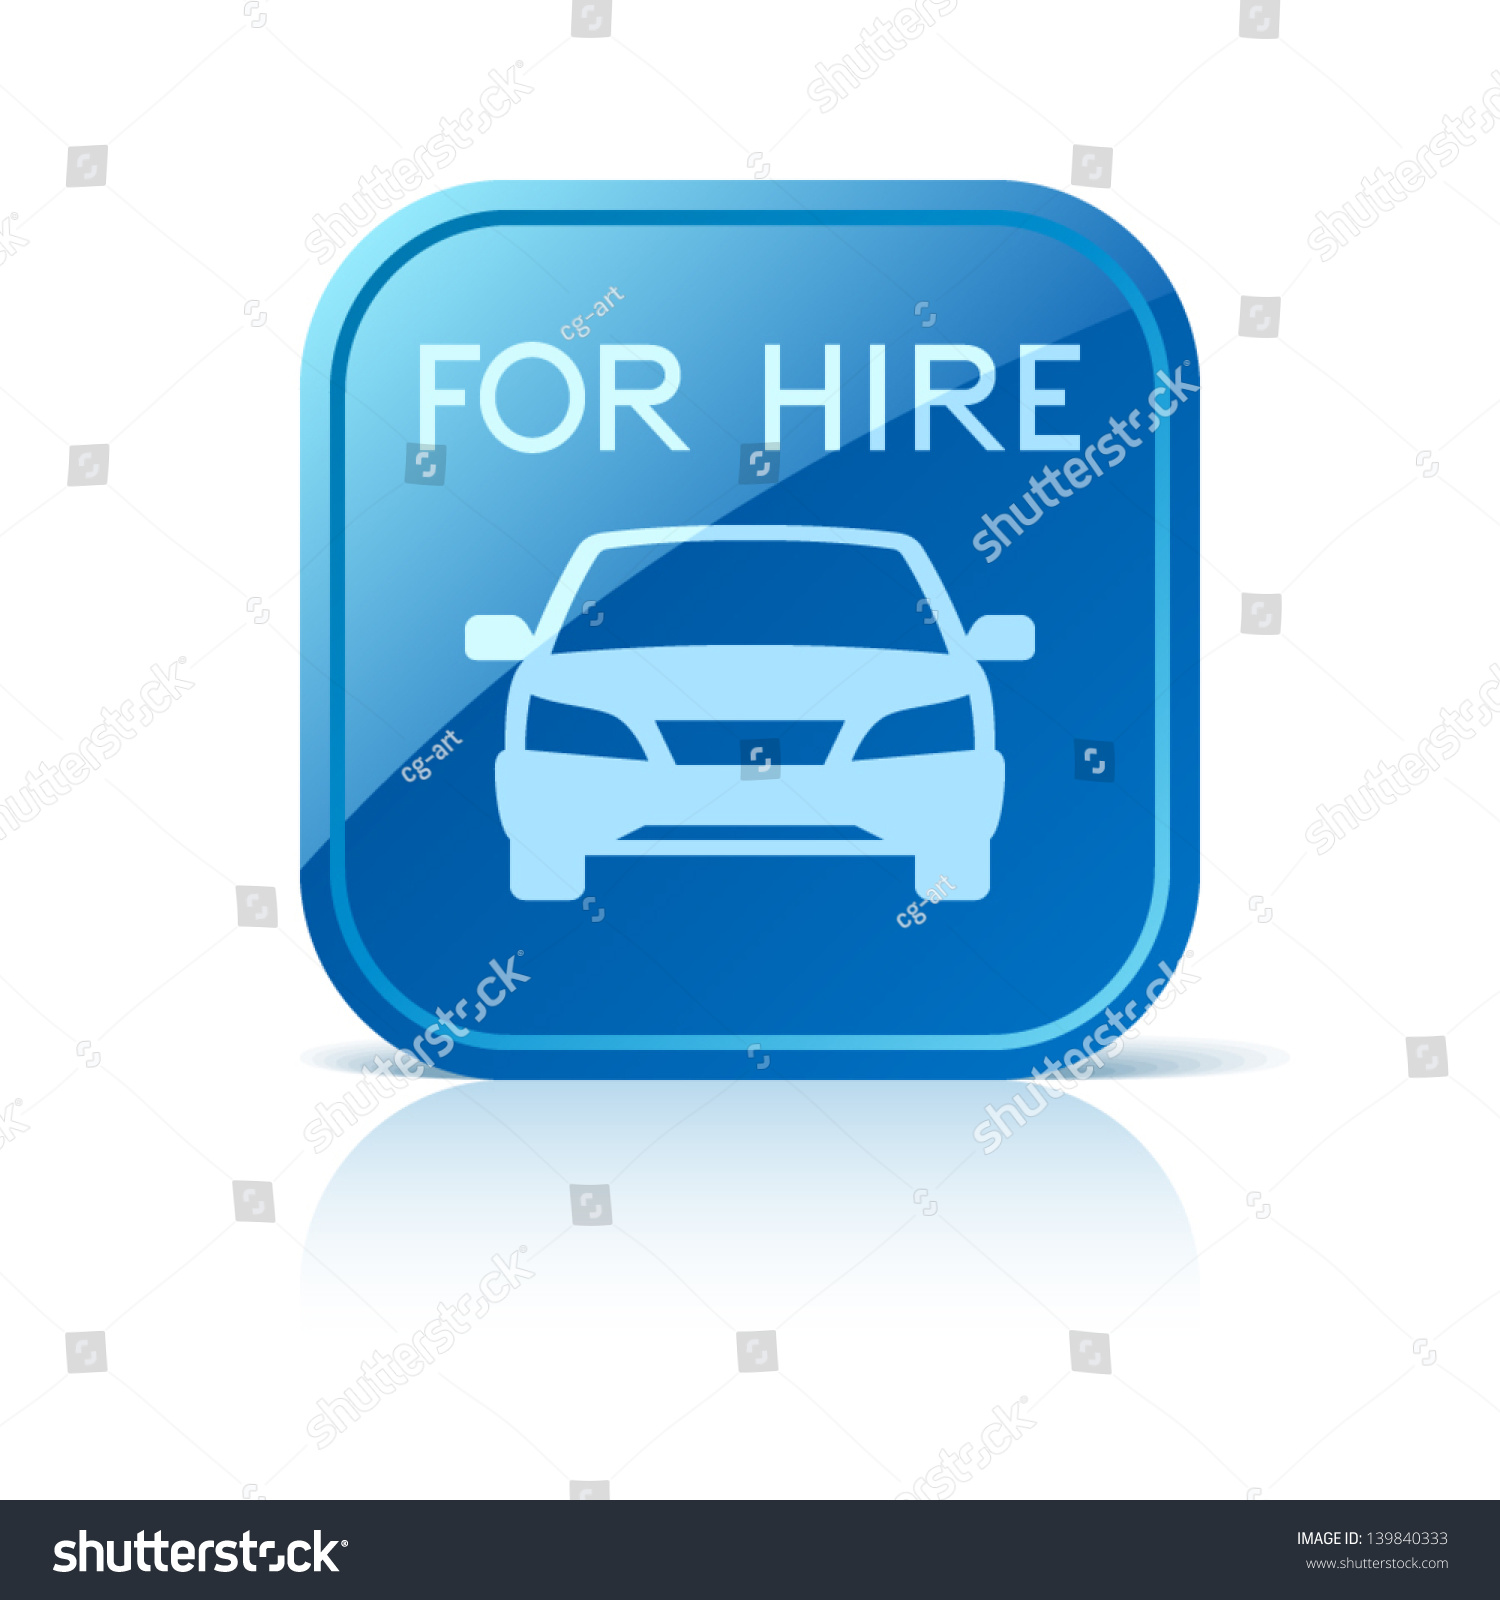 Car Hire Icon On Blue Square Stock Vector 139840333 Shutterstock